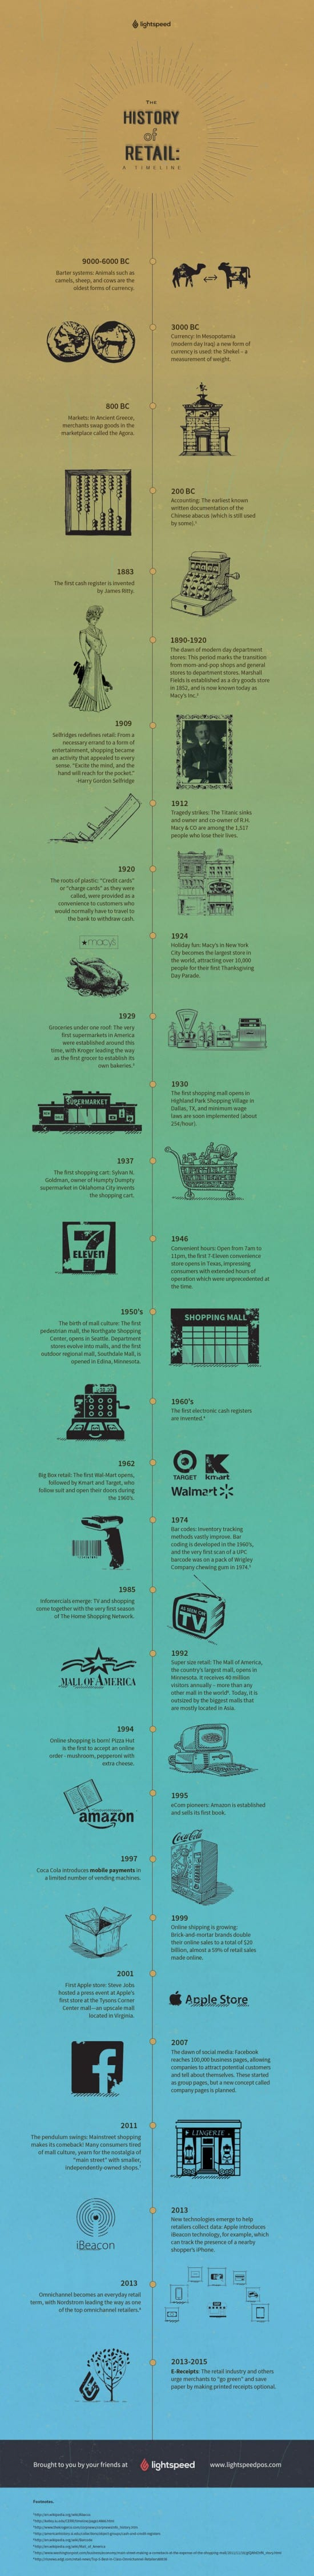 History of retail